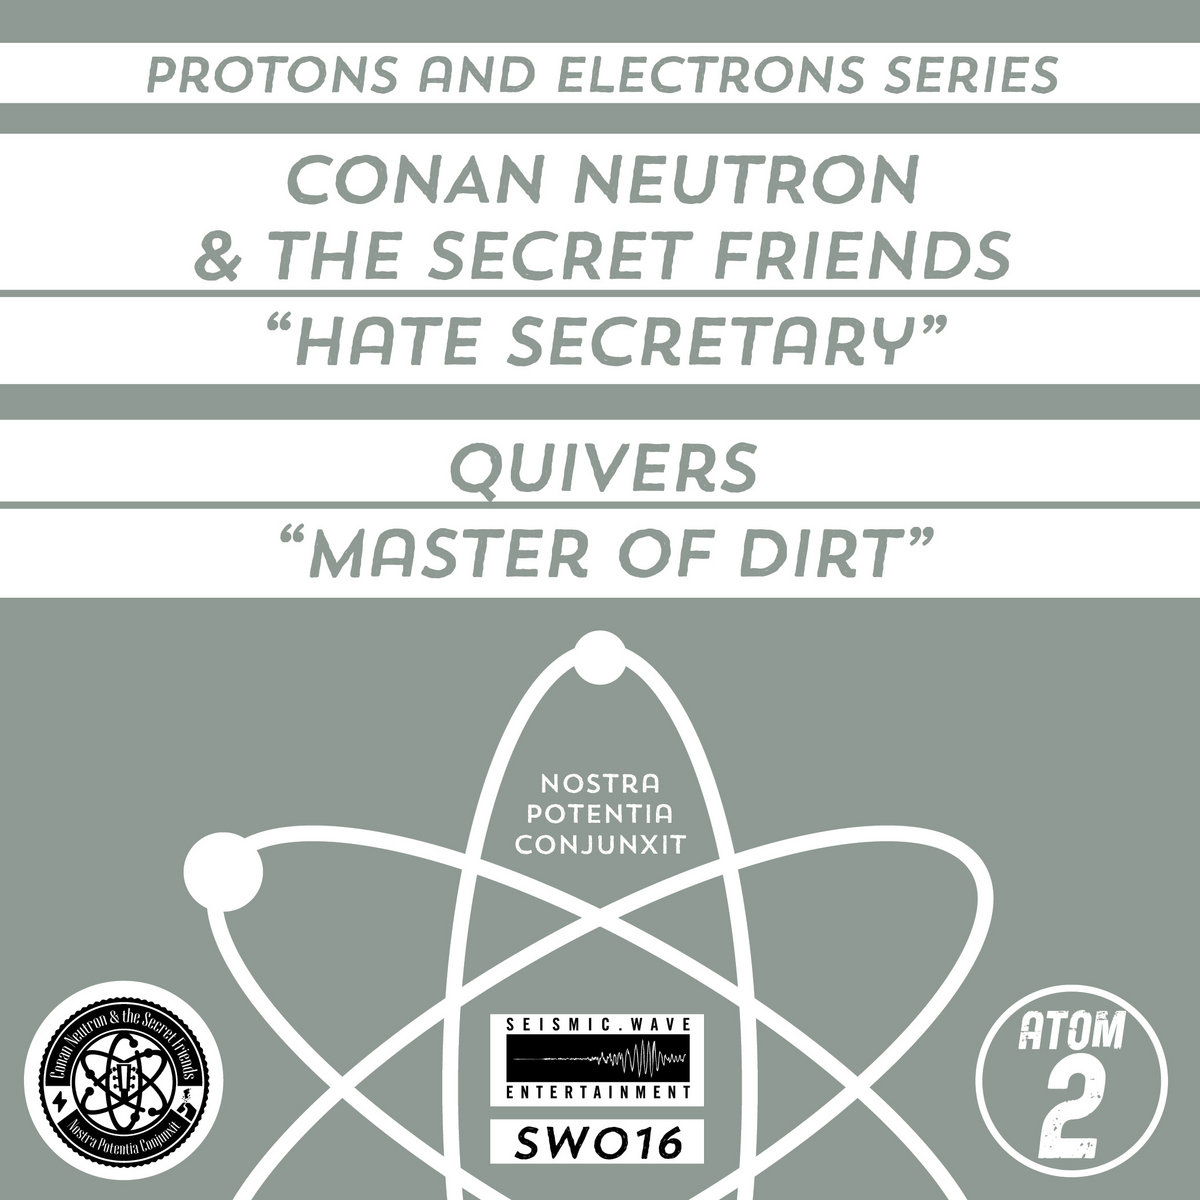 Protons and Electrons: Atom 2 - Hate Secretary / Quivers